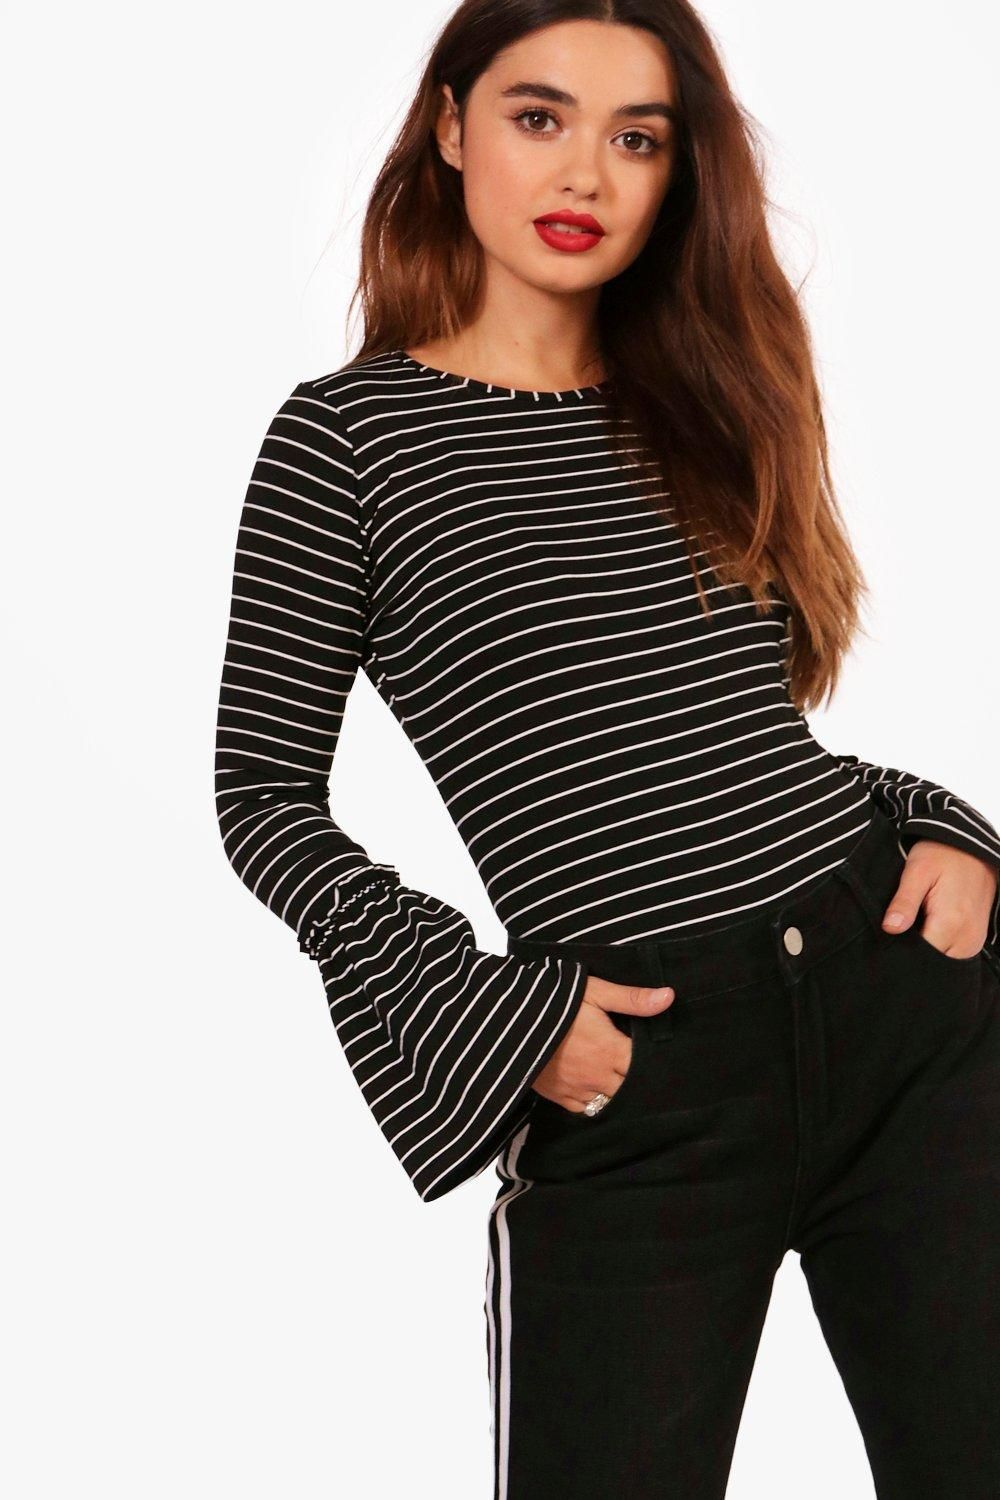 ef762852a2595 Petite Lottie Striped Frill Sleeve Top | boohoo | long sleeve bell flare  blouse in black and white horizontal stripes.